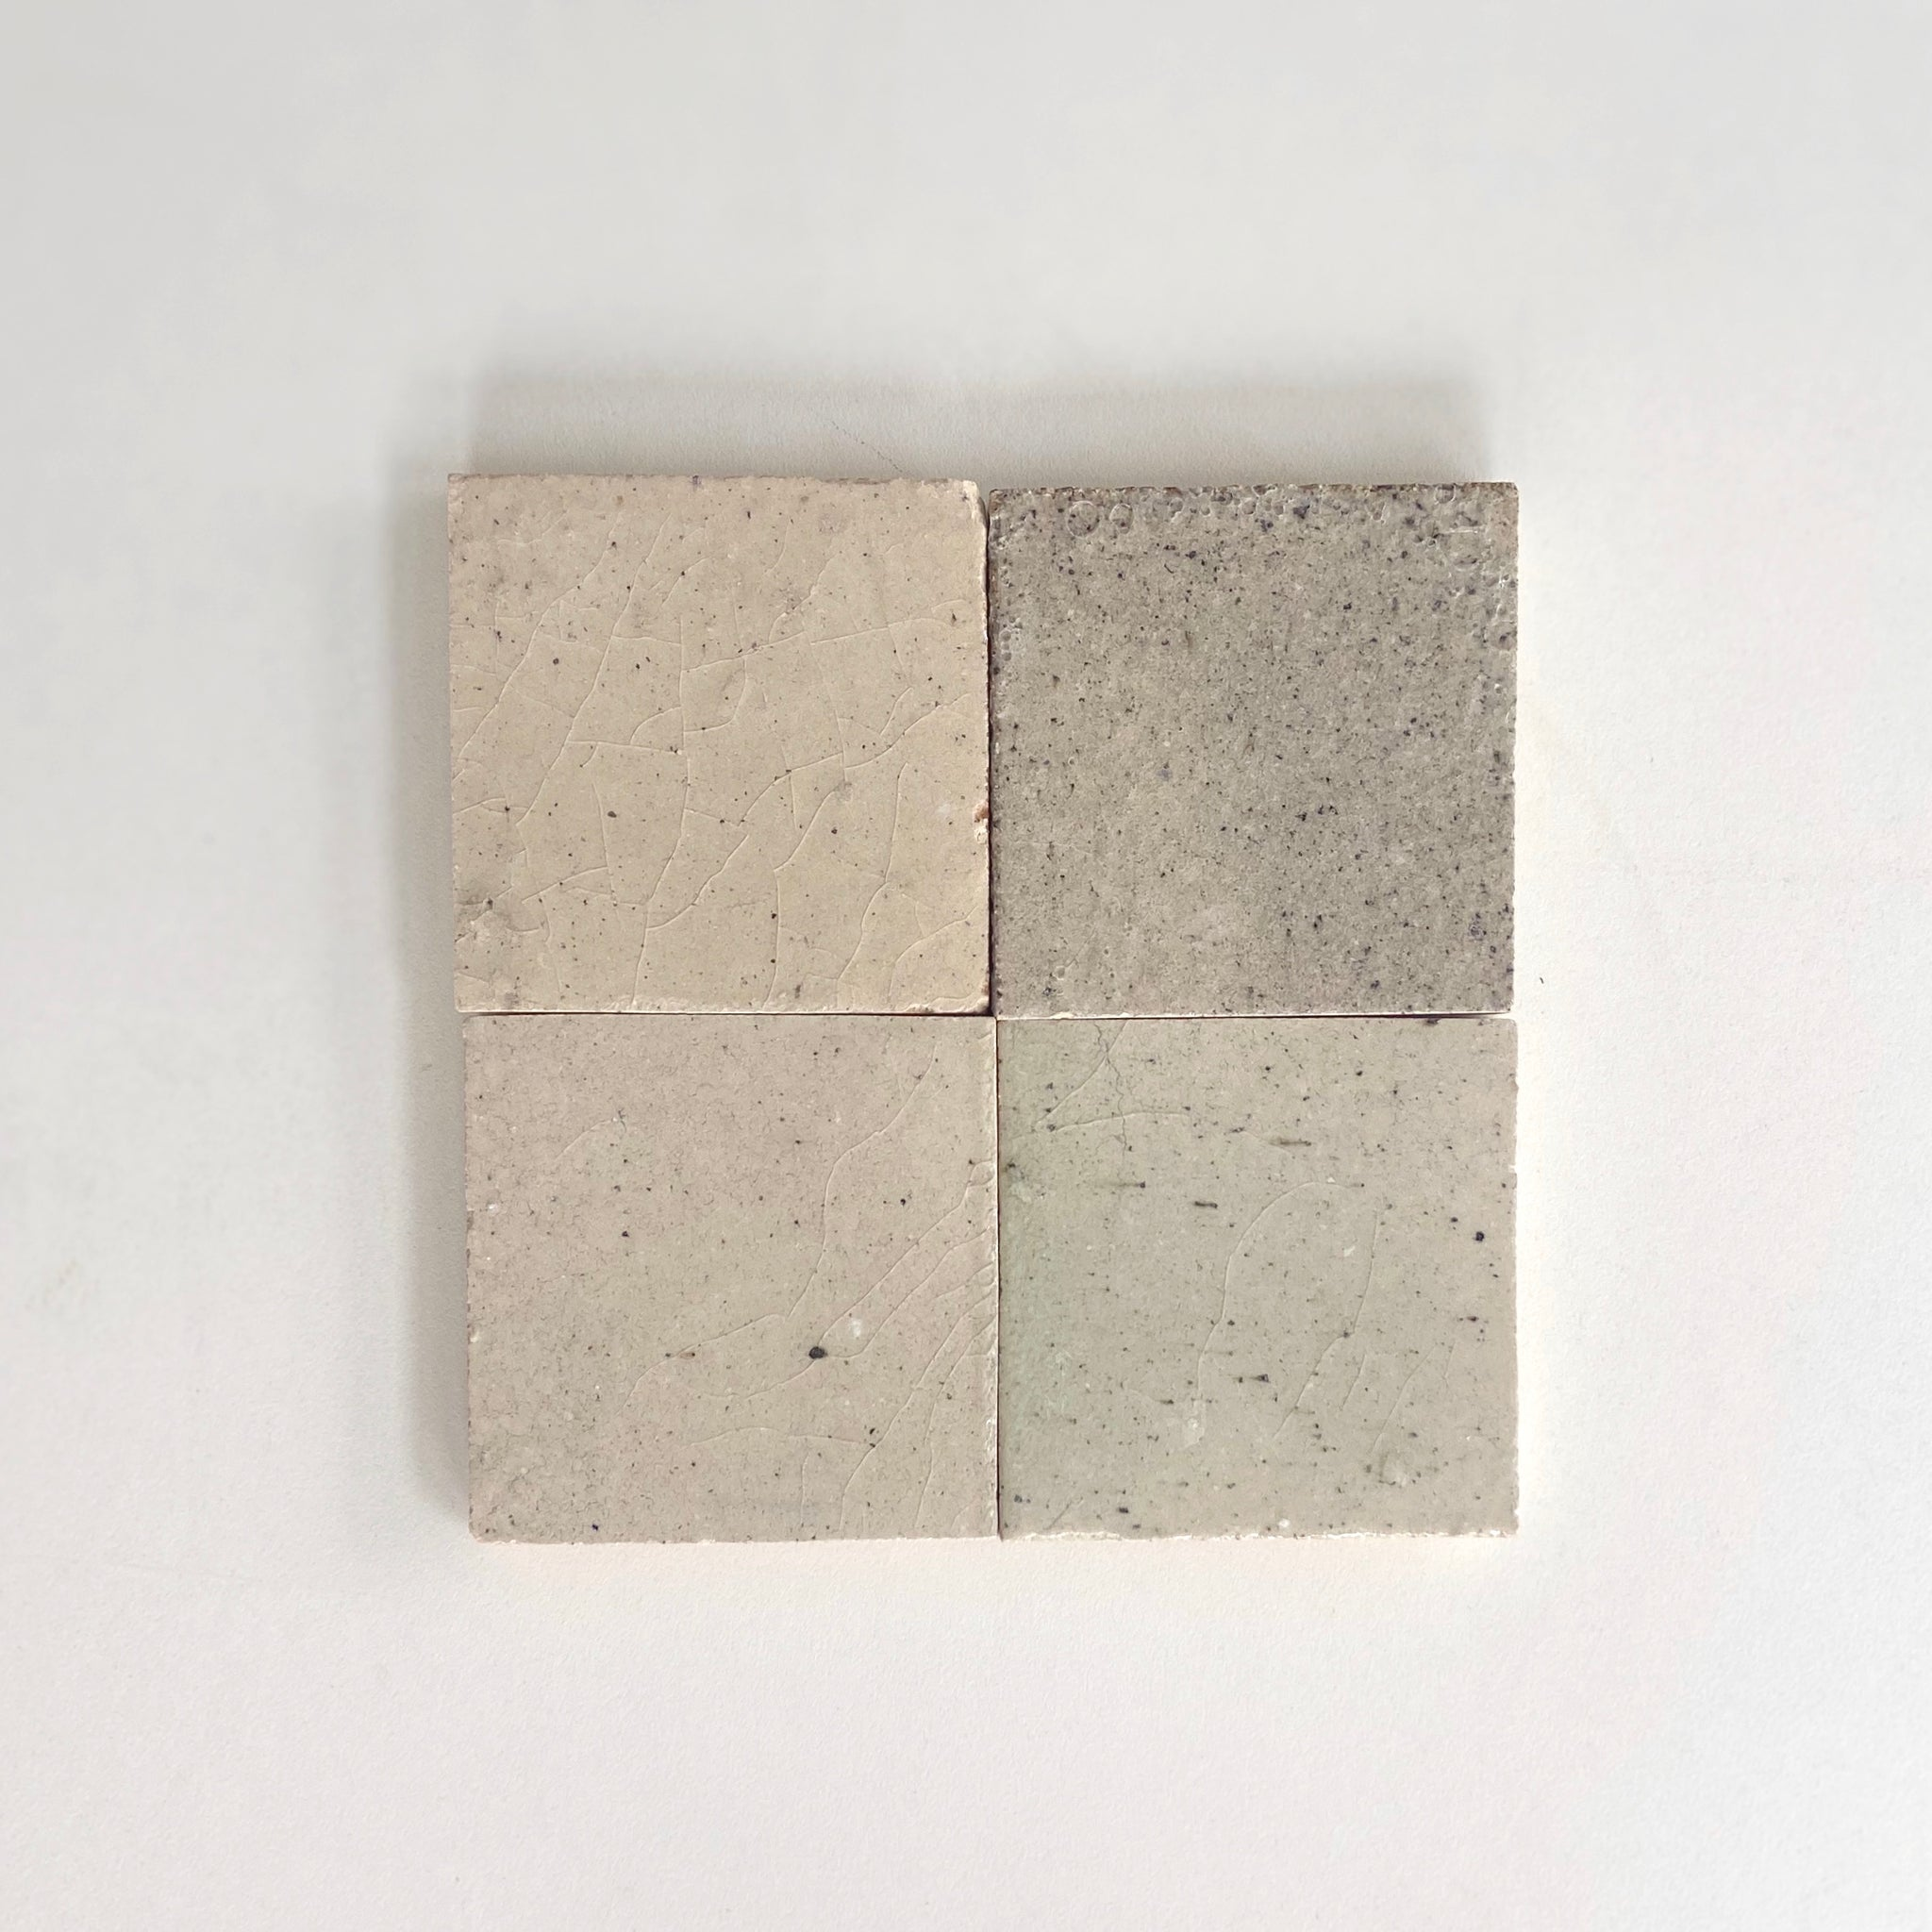 Tierra Smoke Individual Tile sample